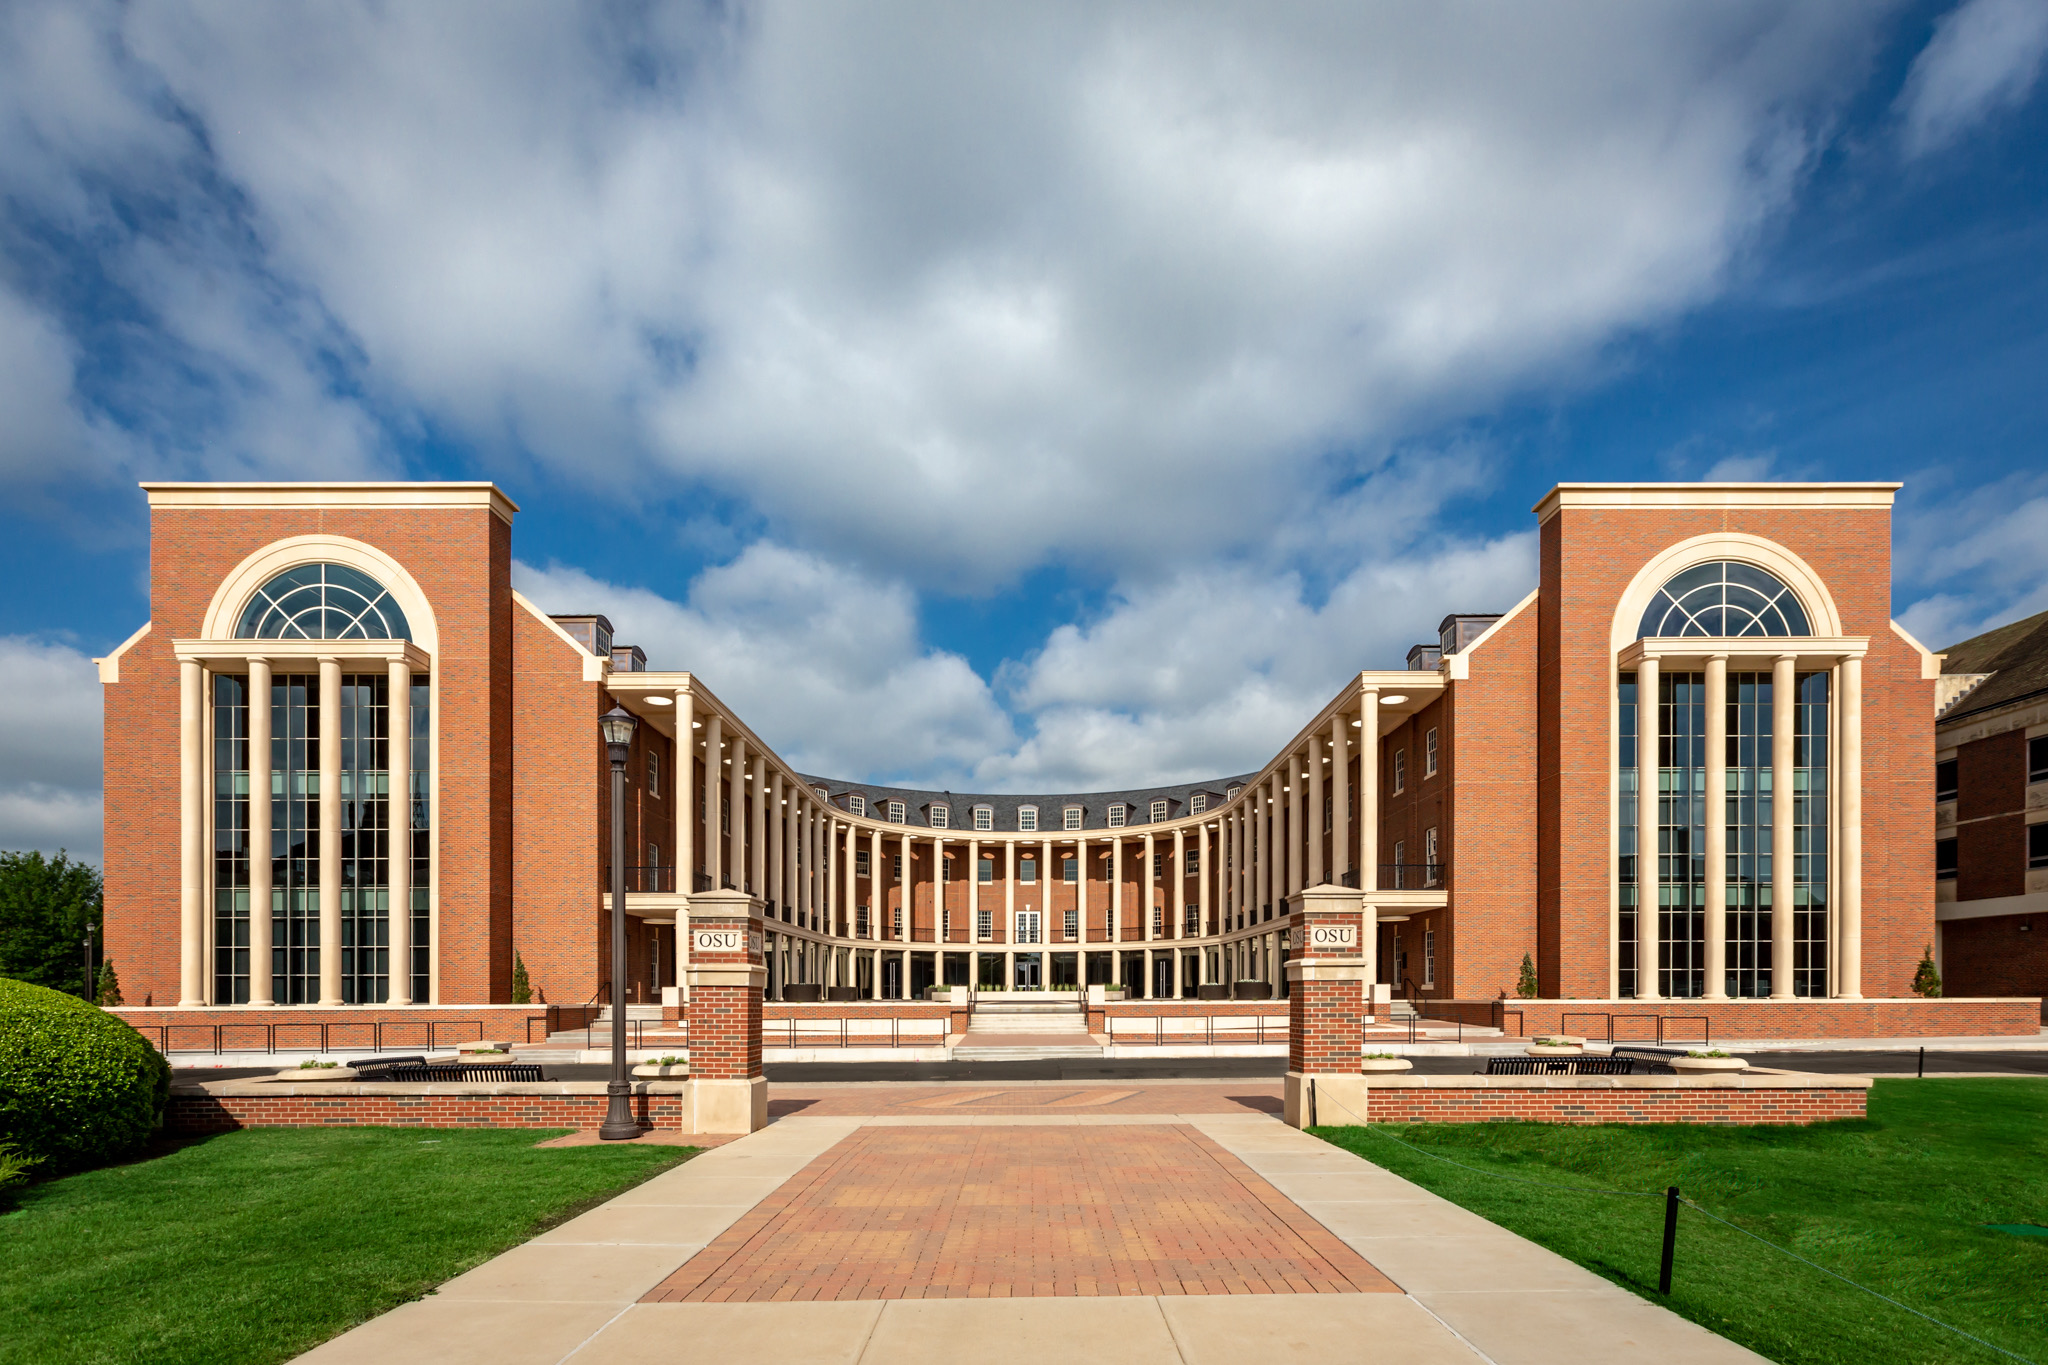 OSU Spears School of Business